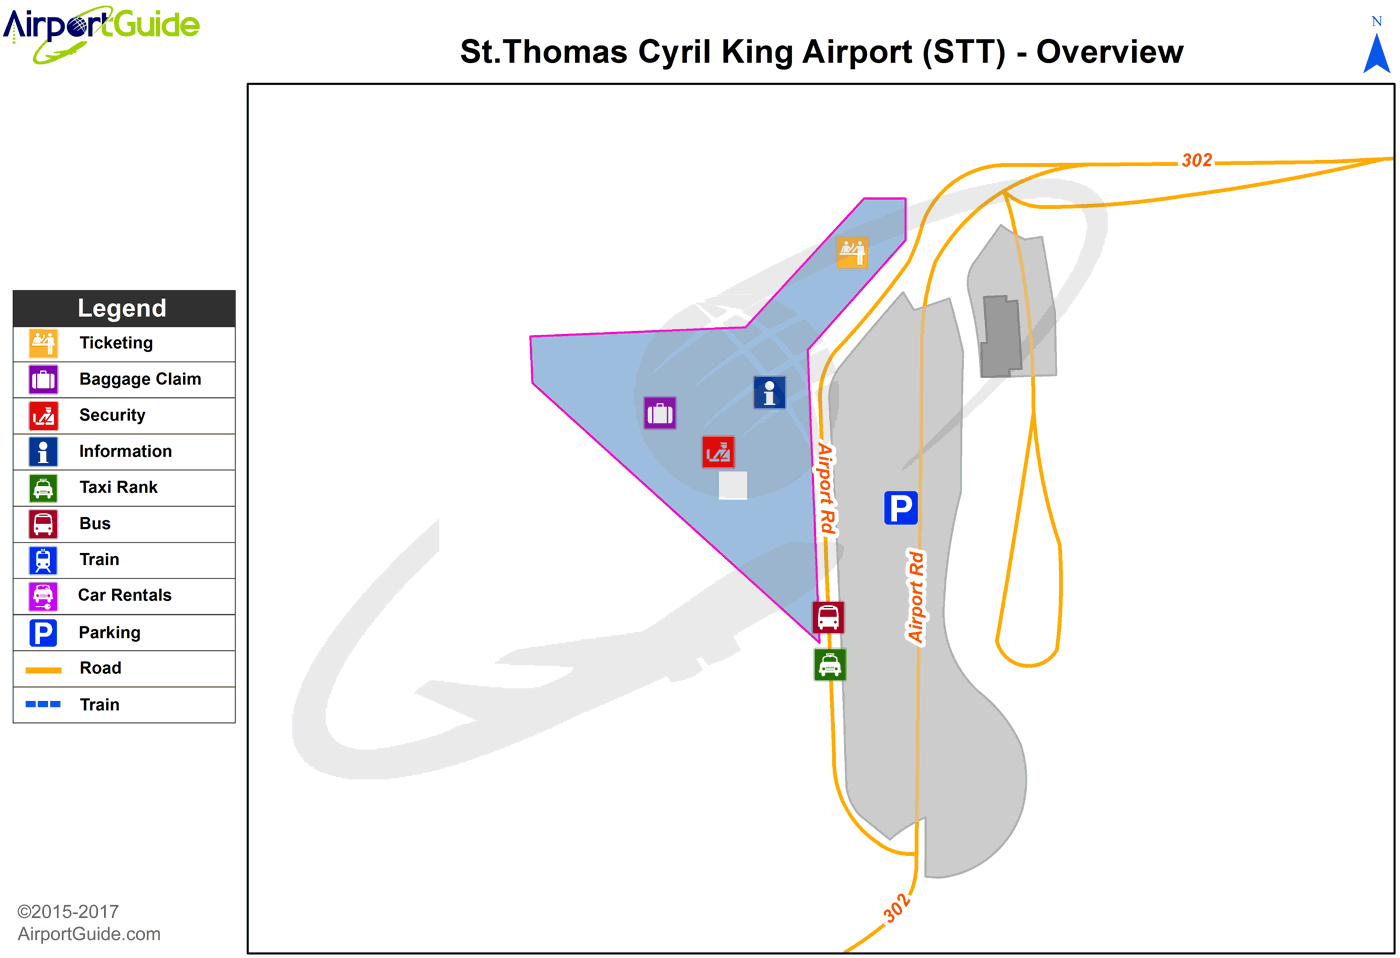 Pin on Airport Terminal Maps - AirportGuide.com